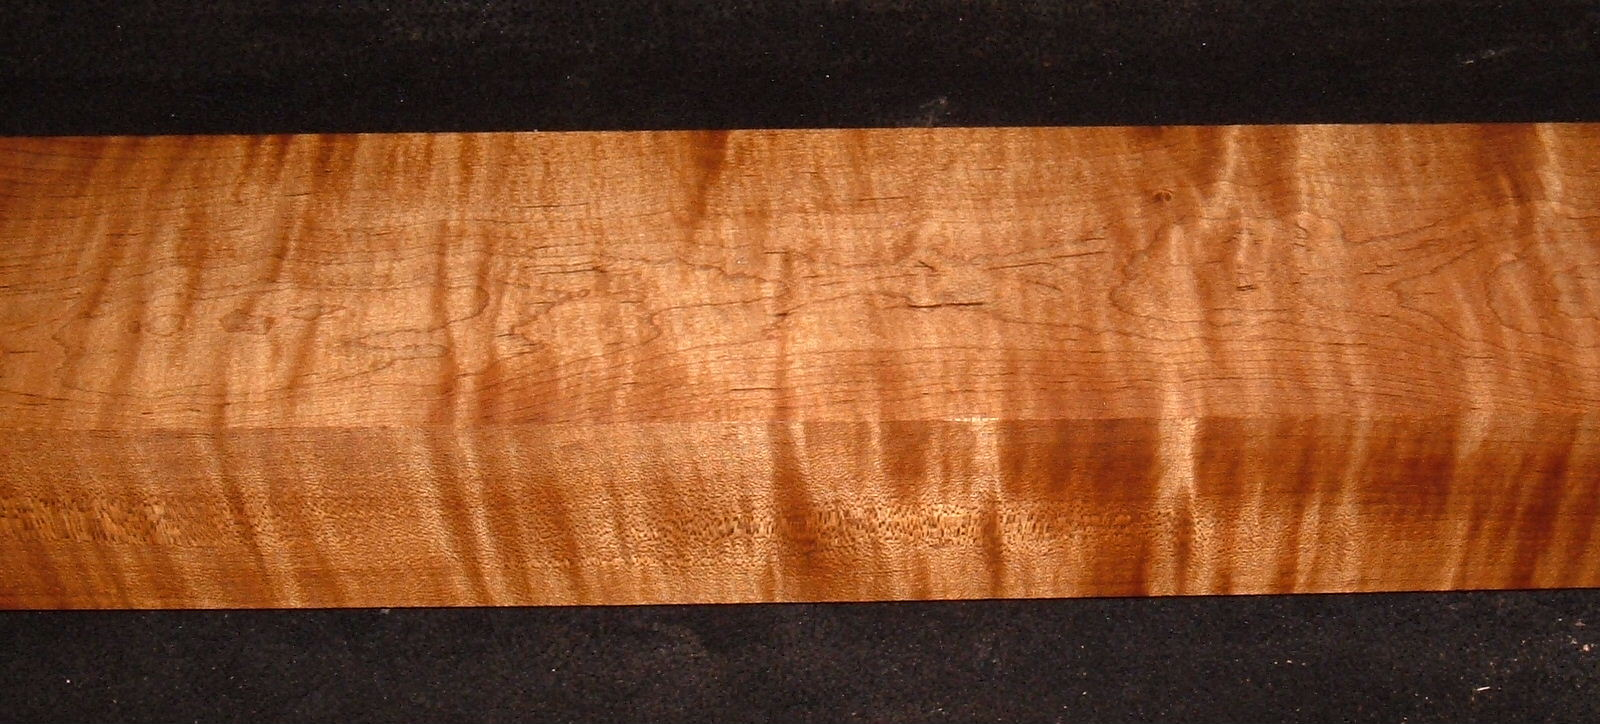 RMS-3106, 2-1/2x3-7/8x25+, Roasted Torrefied, Curly Tiger Maple